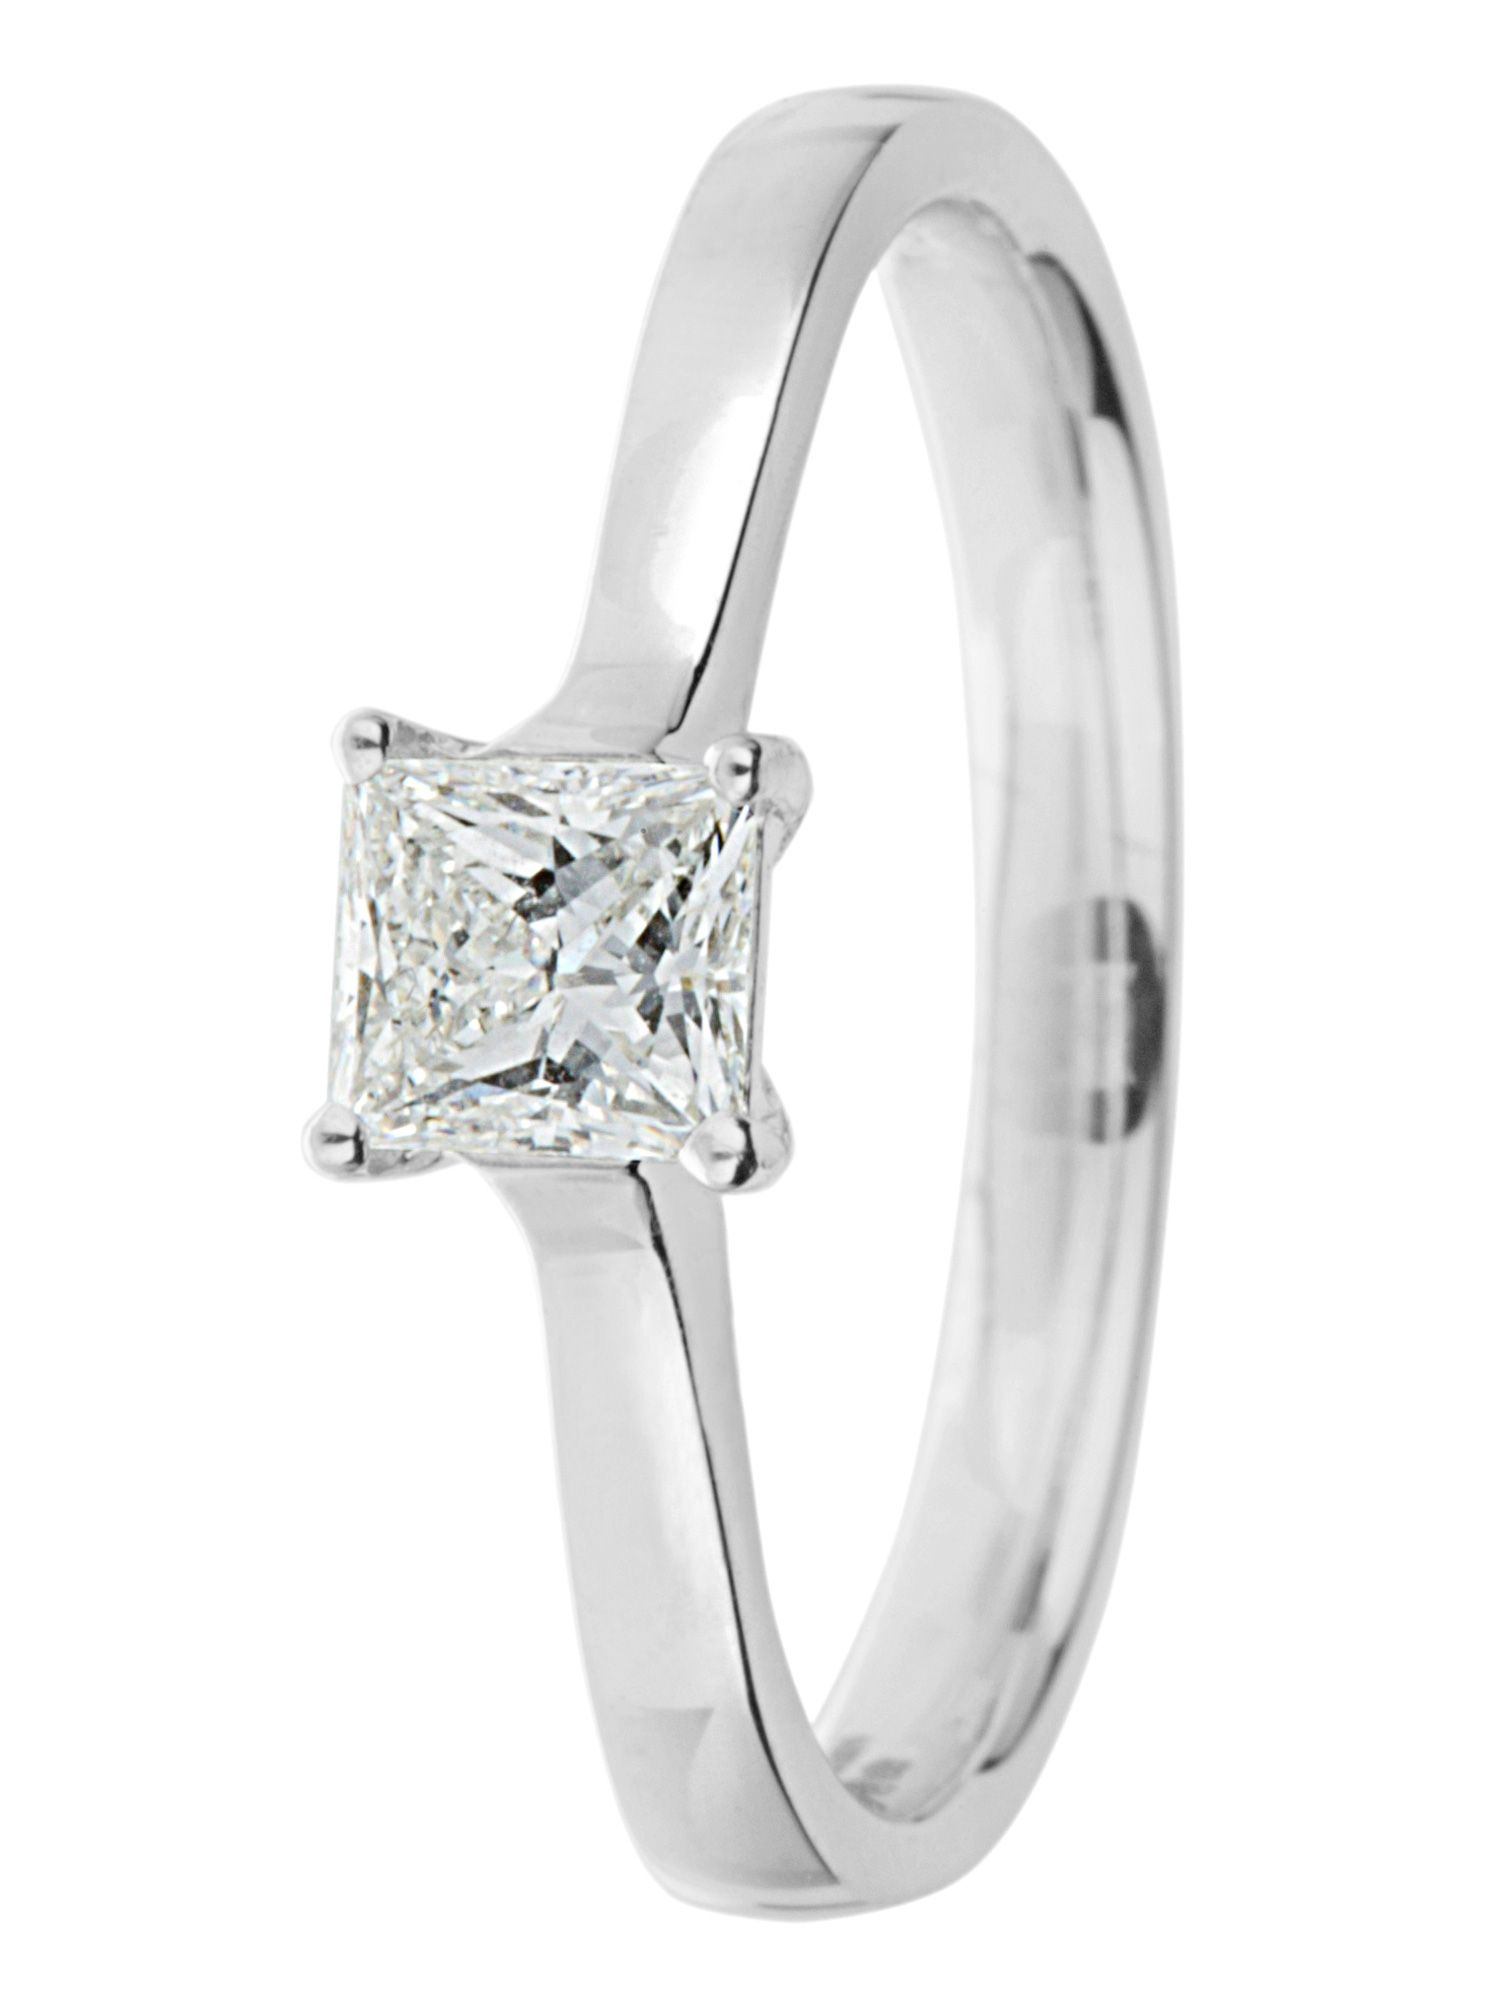 Ardesco platinum 0.25ct diamond solitaire